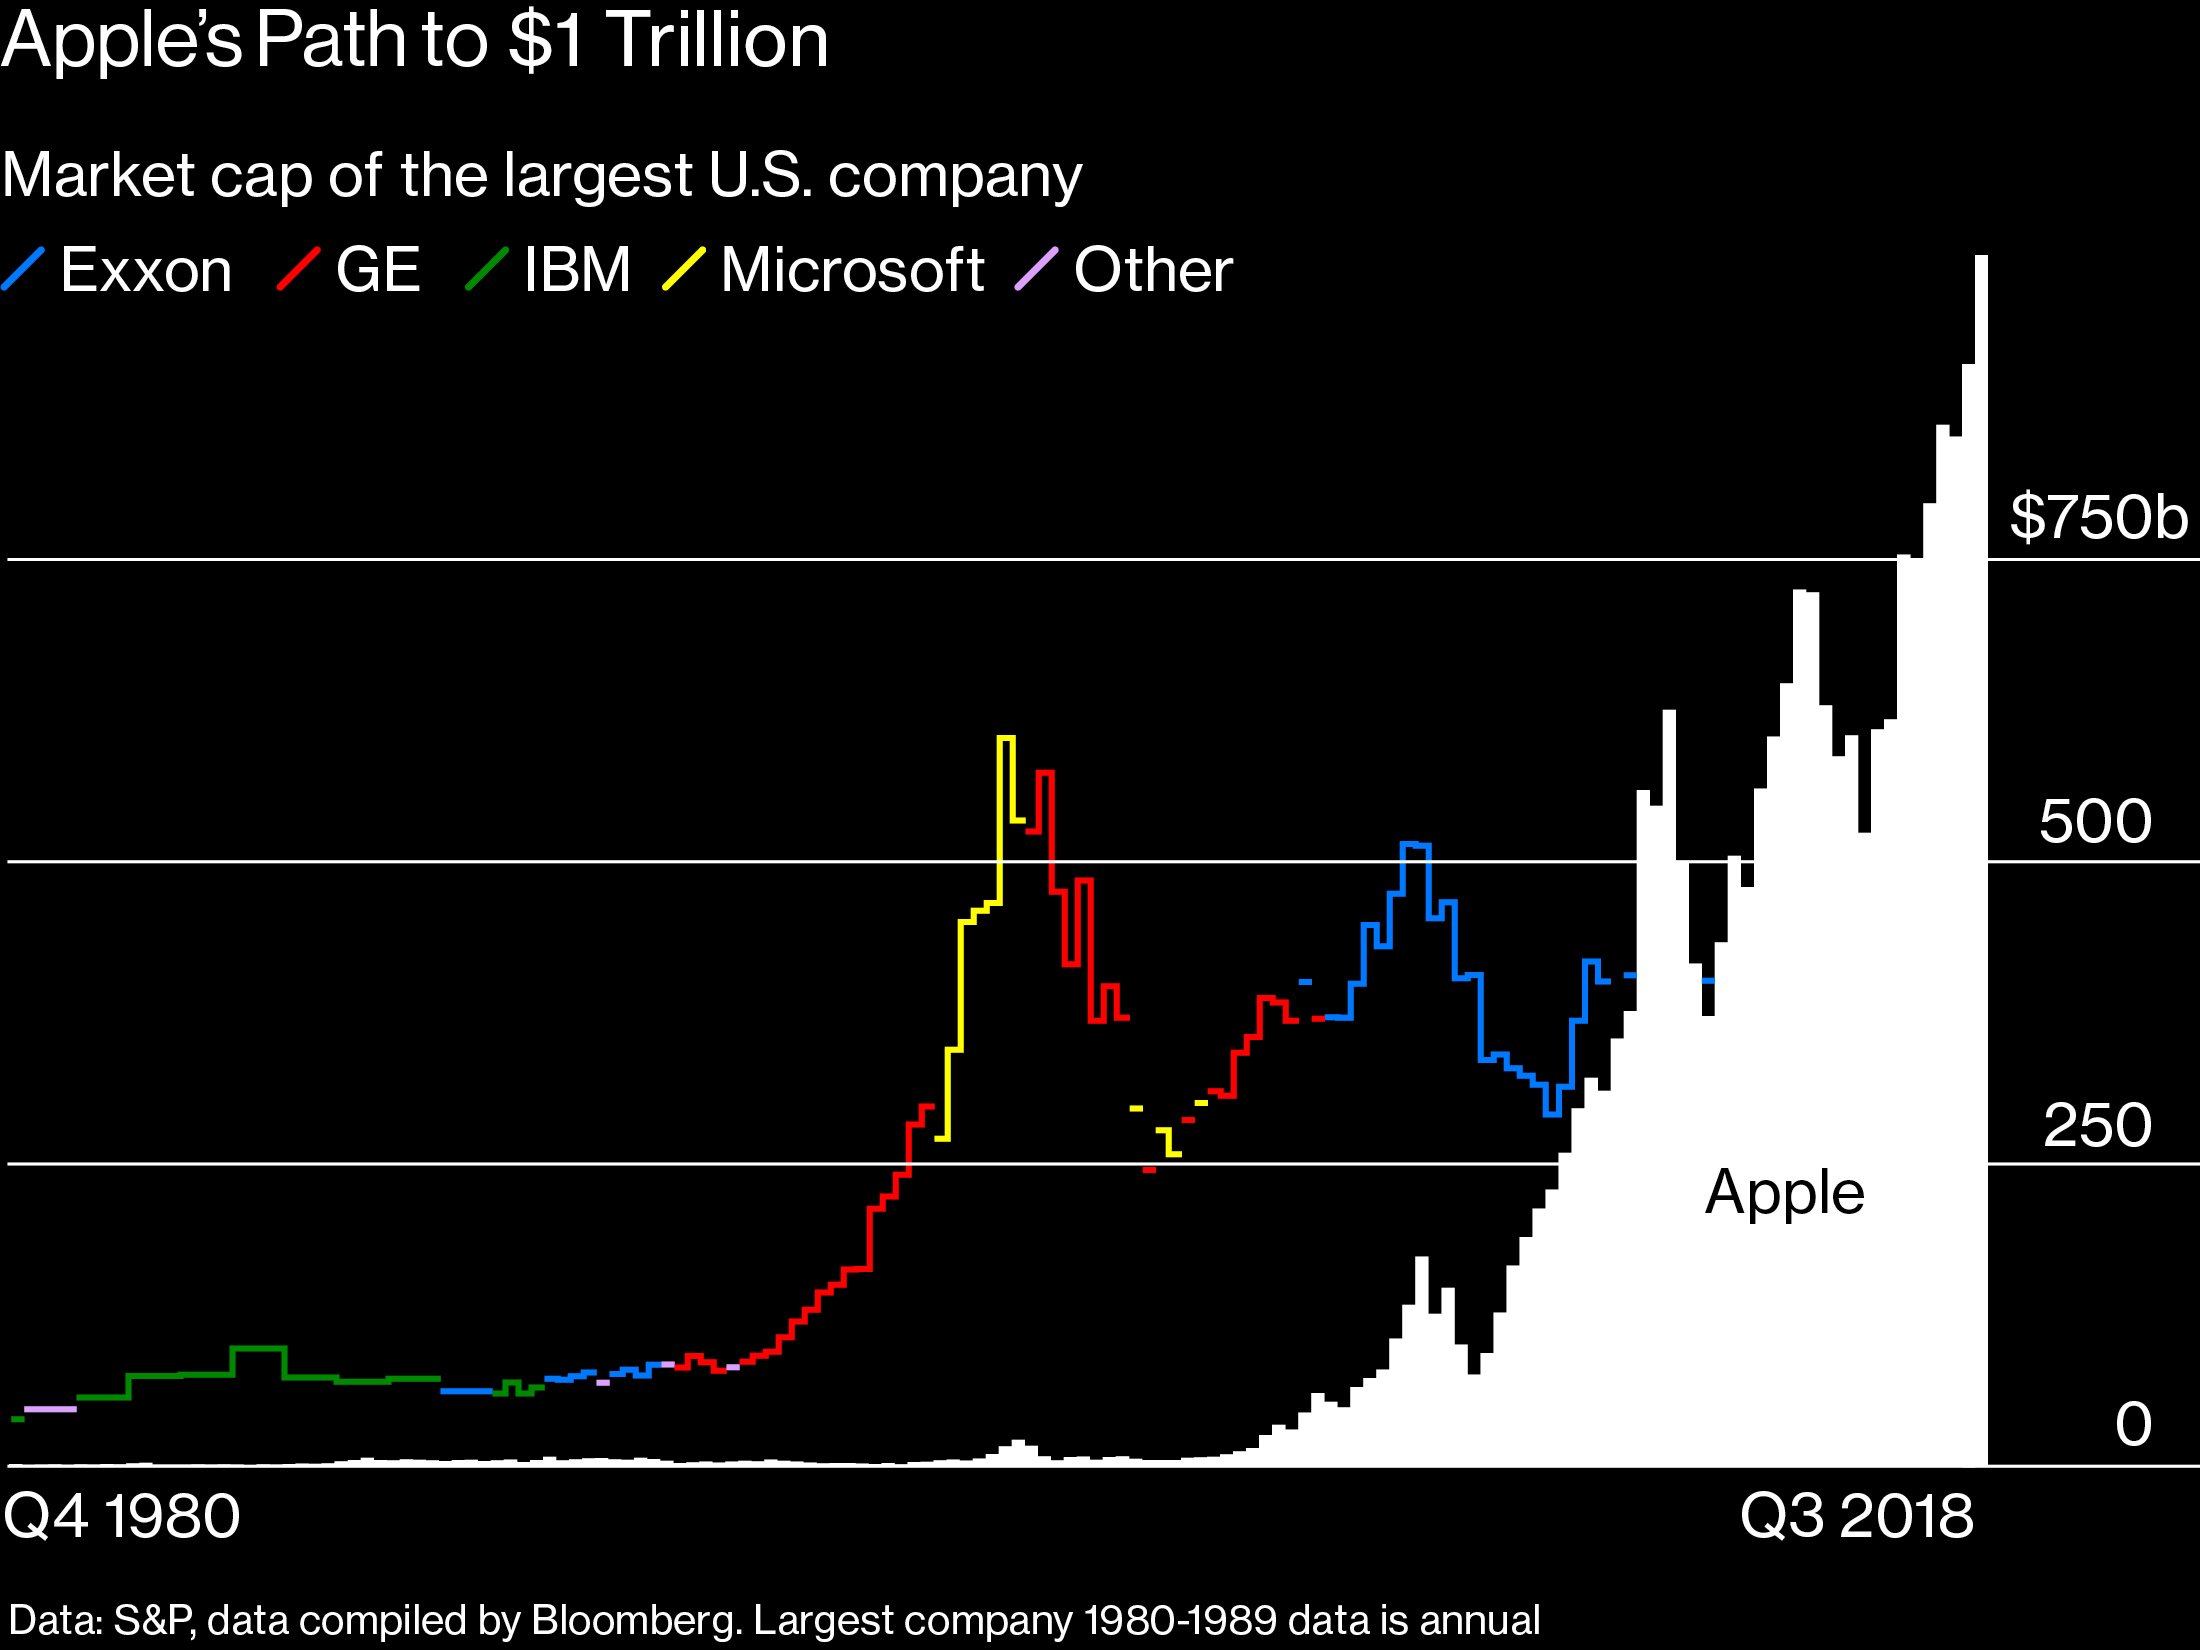 A fun chart from Brad Stone's piece on Apple $1 Trillion (click on the image)